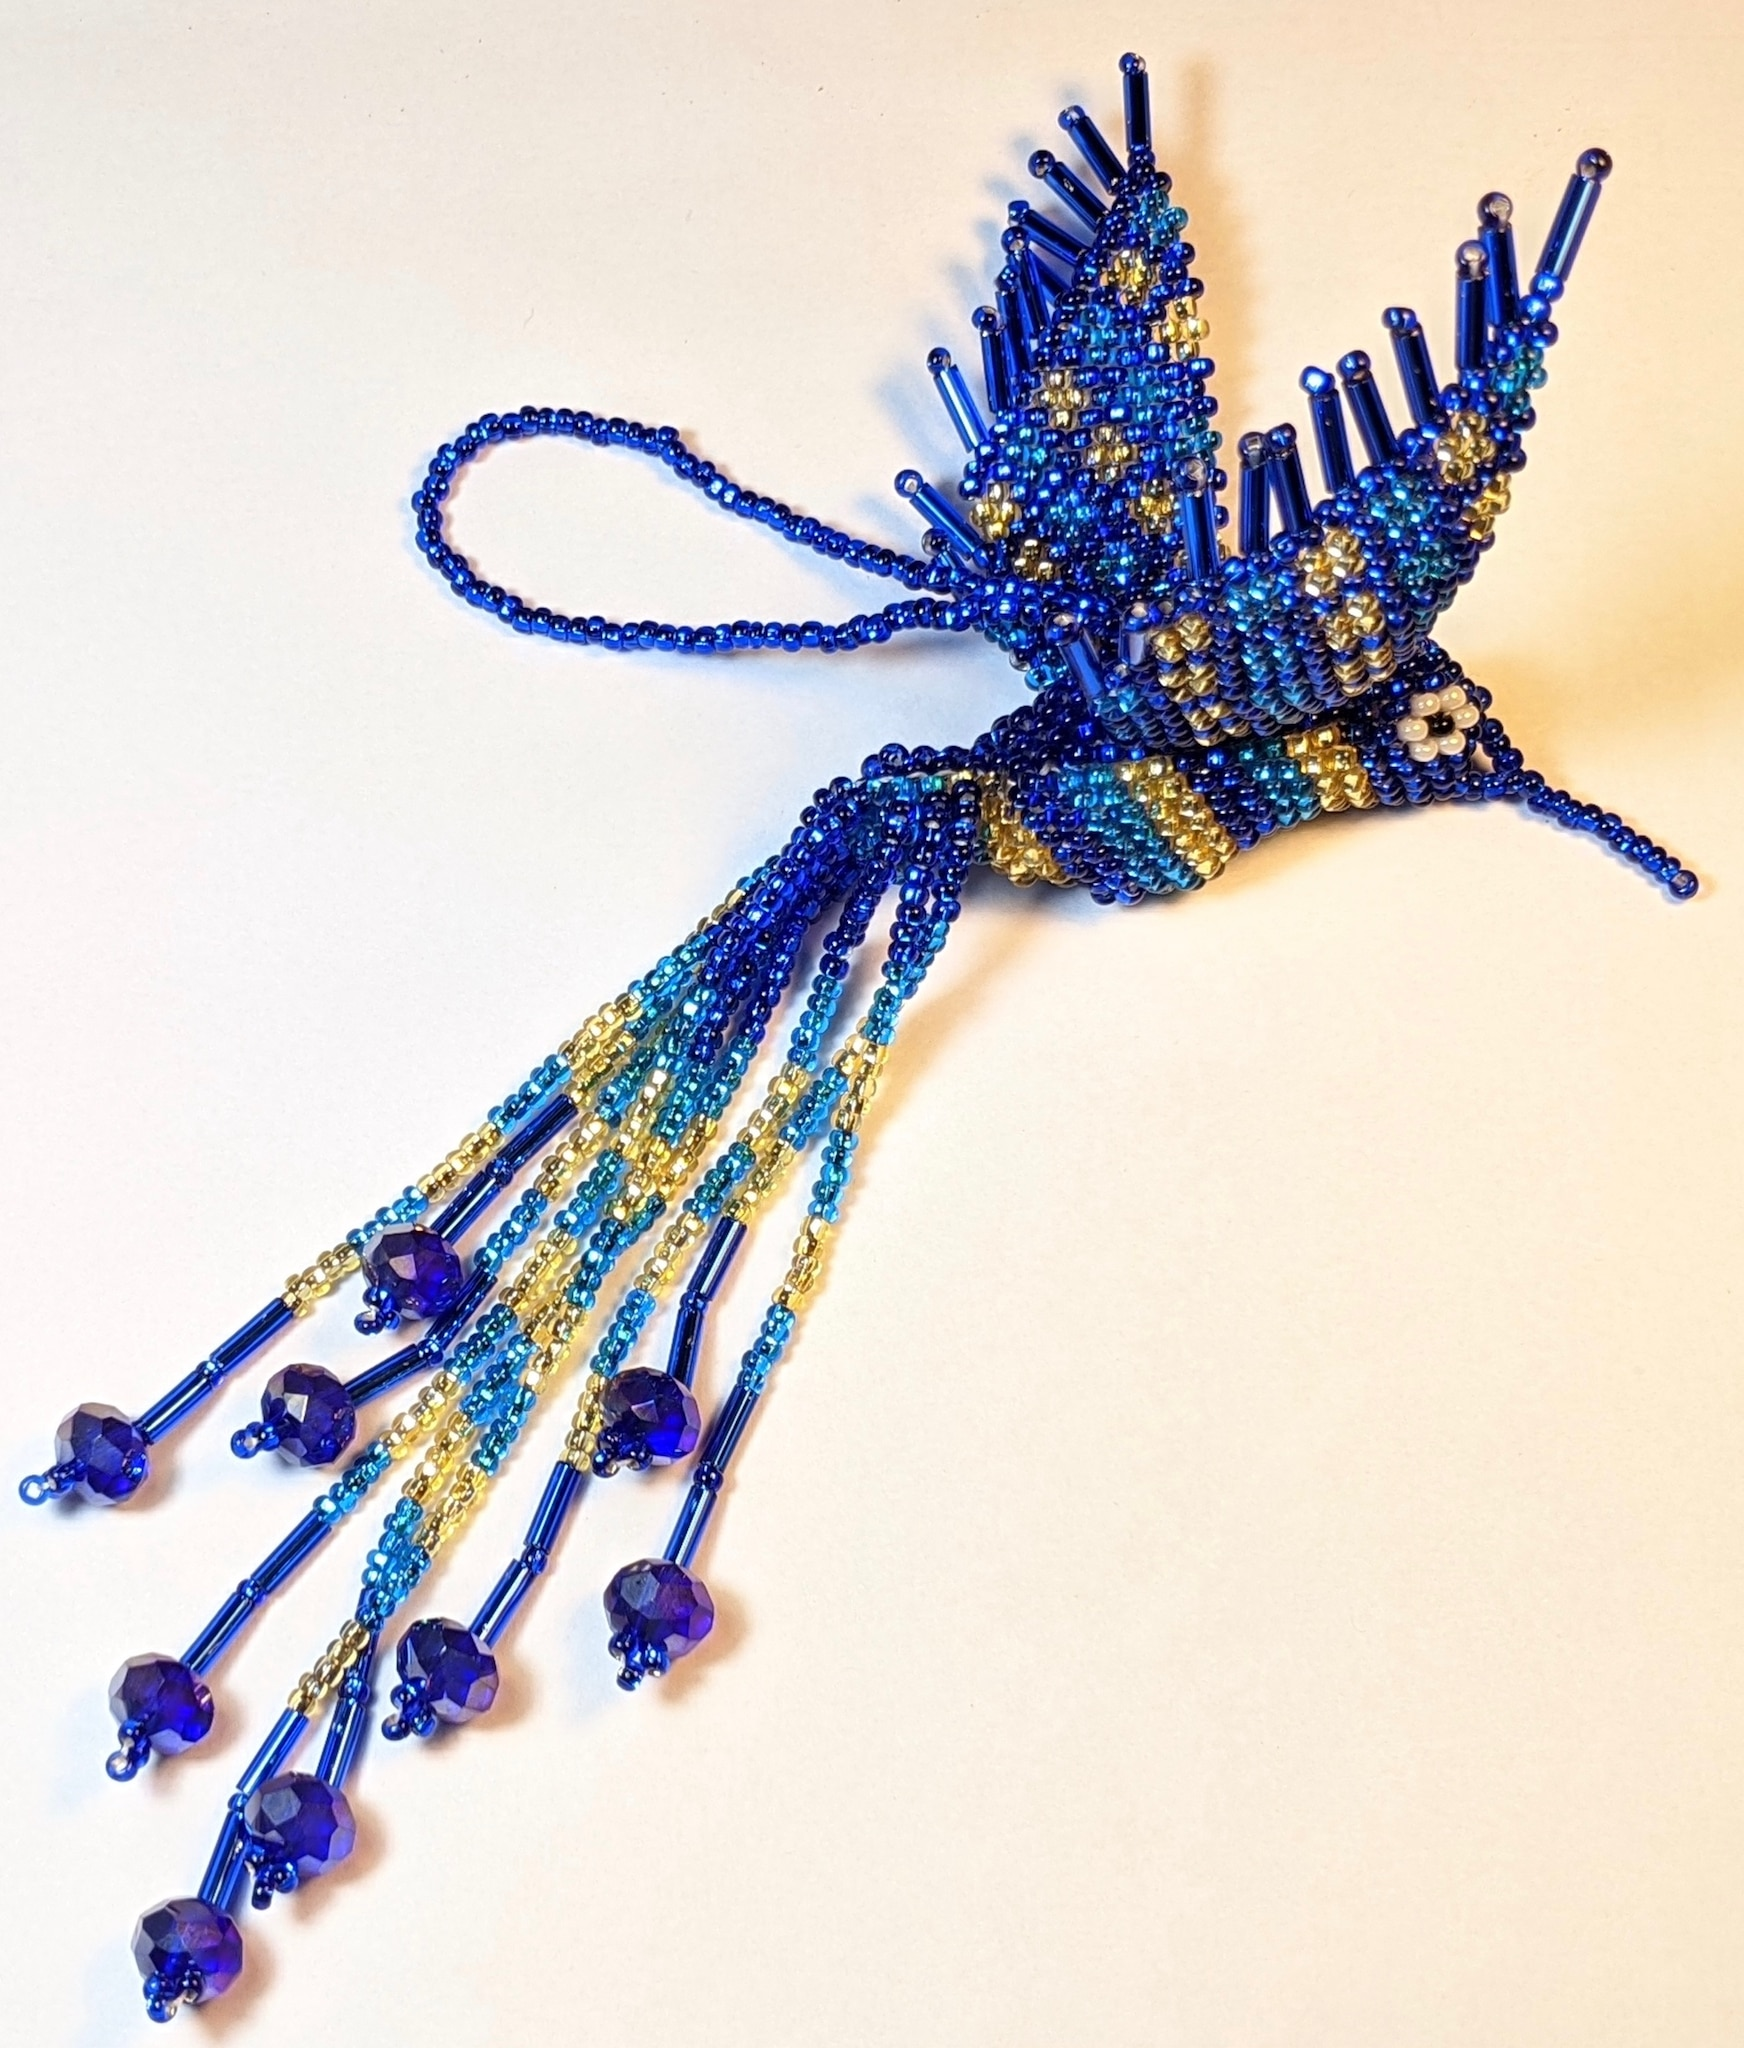 Hummingbird Beaded Ornament - Celestial Blue, Iridescent Blue, and Light Gold